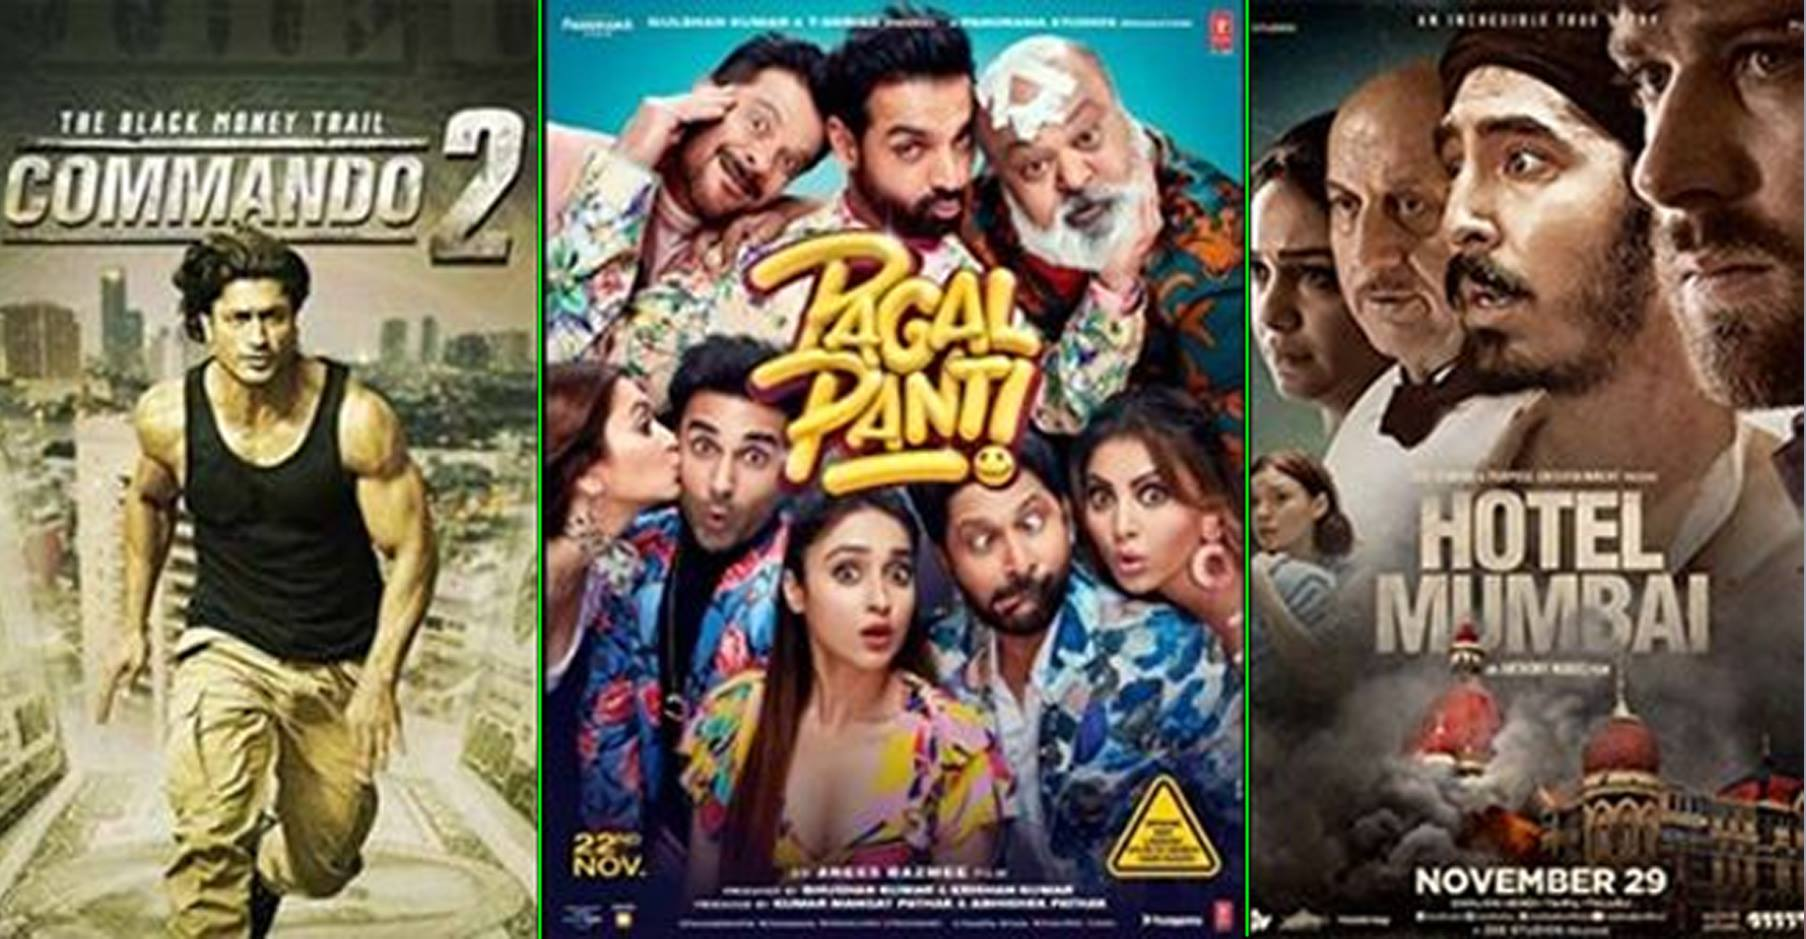 Box Office Collection: Commando attracts attention, Hotel Mumbai and Pagalpanti struggles